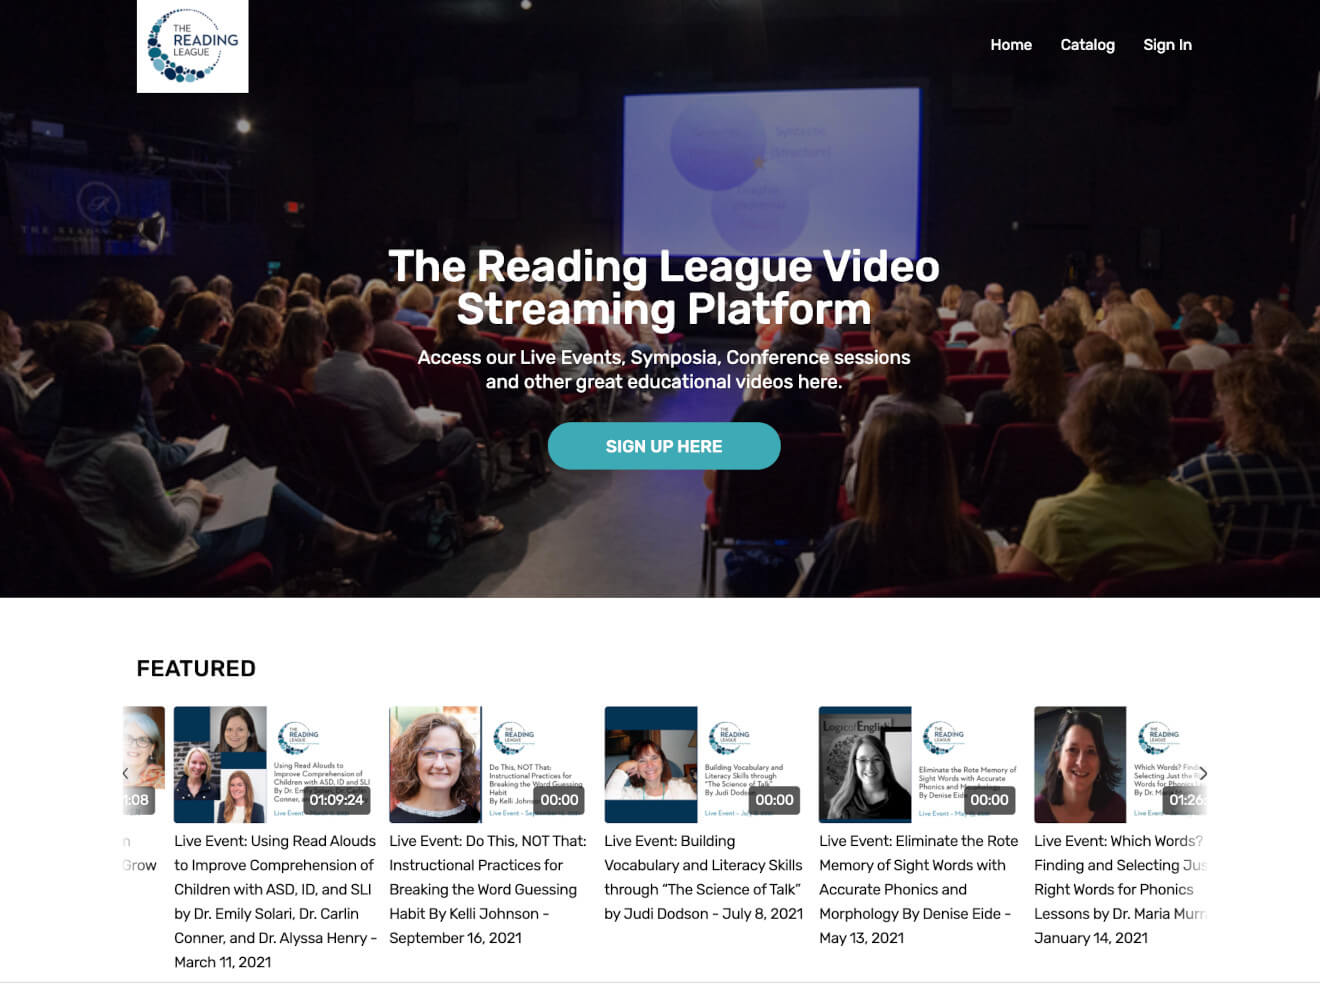 reading league featured videos